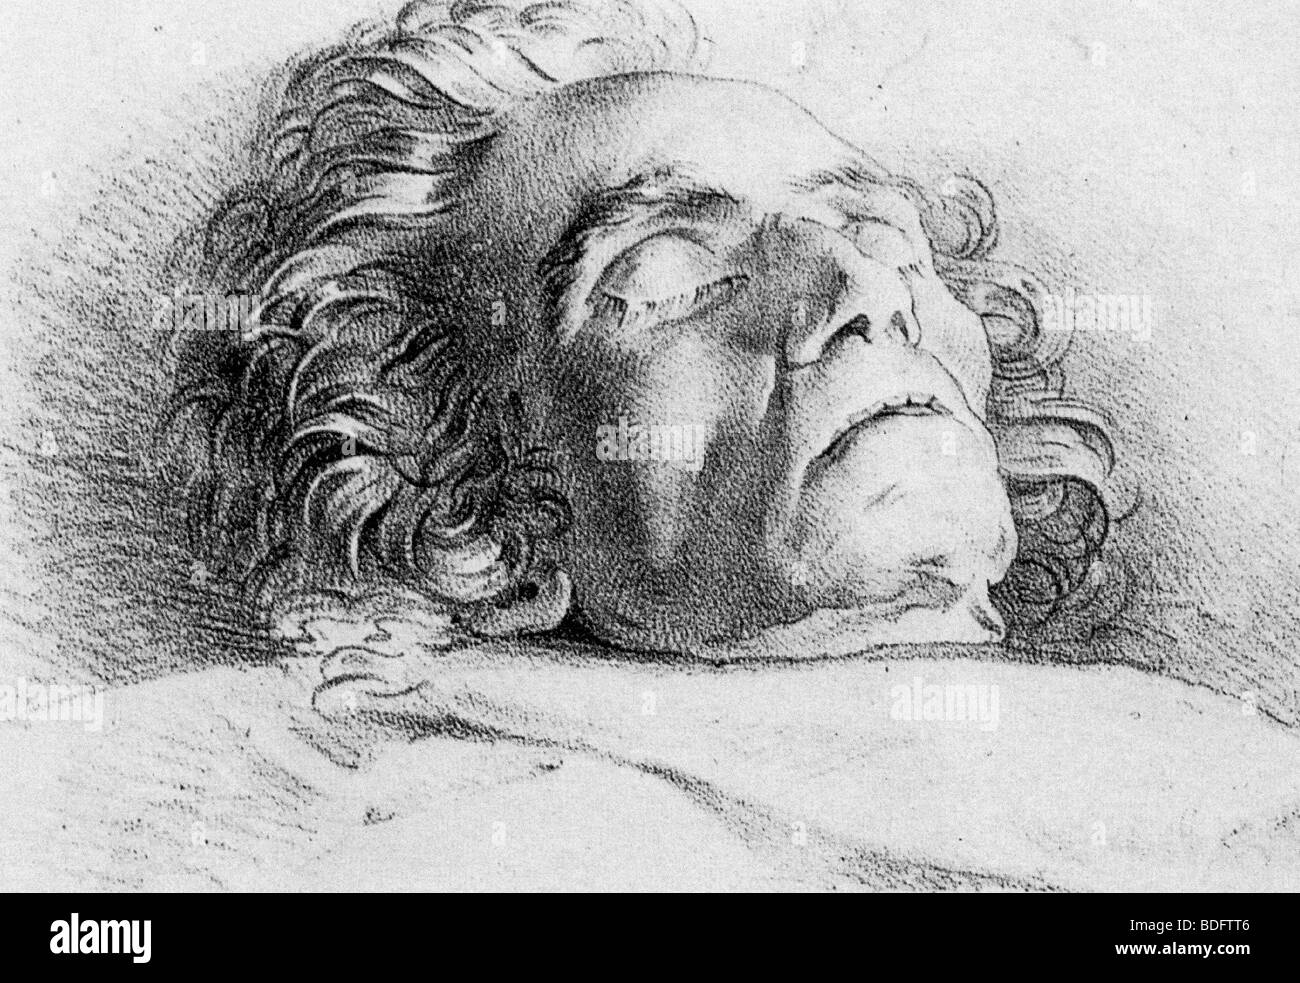 LUDWIG van BEETHOVEN  (1770-1827) German composer on his death bed. - Stock Image